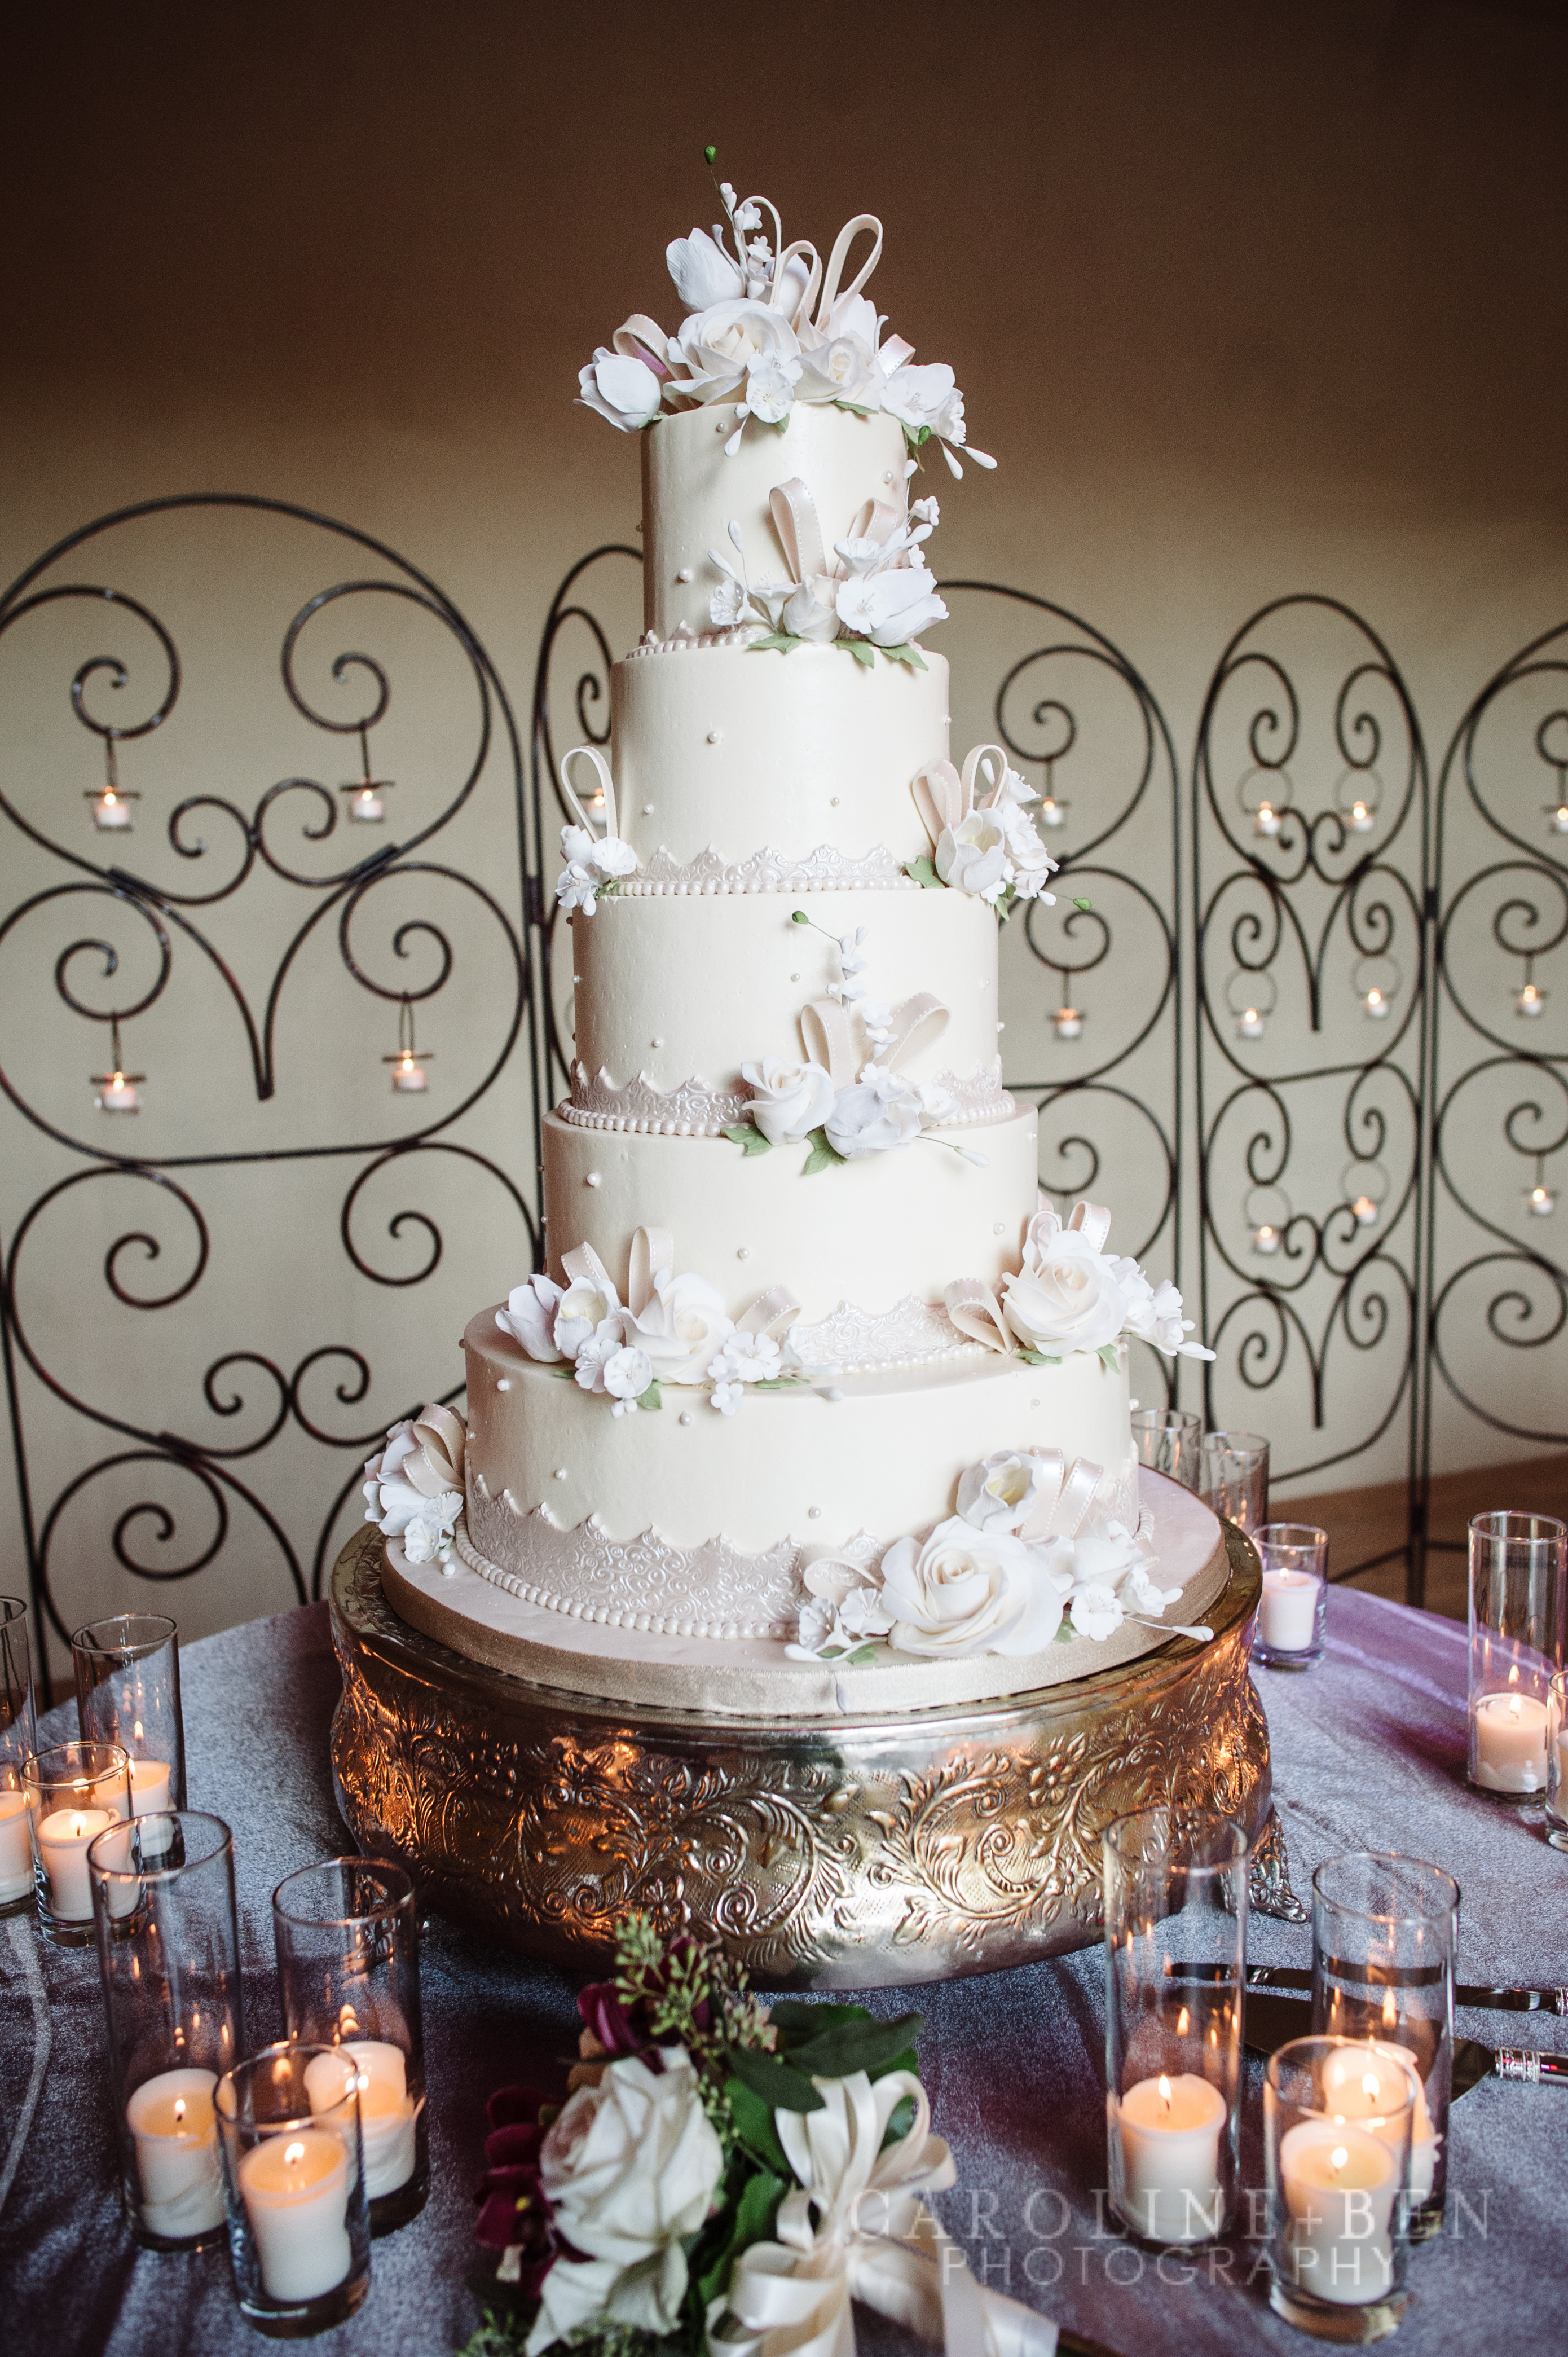 Stunning cake with candle backdrop.